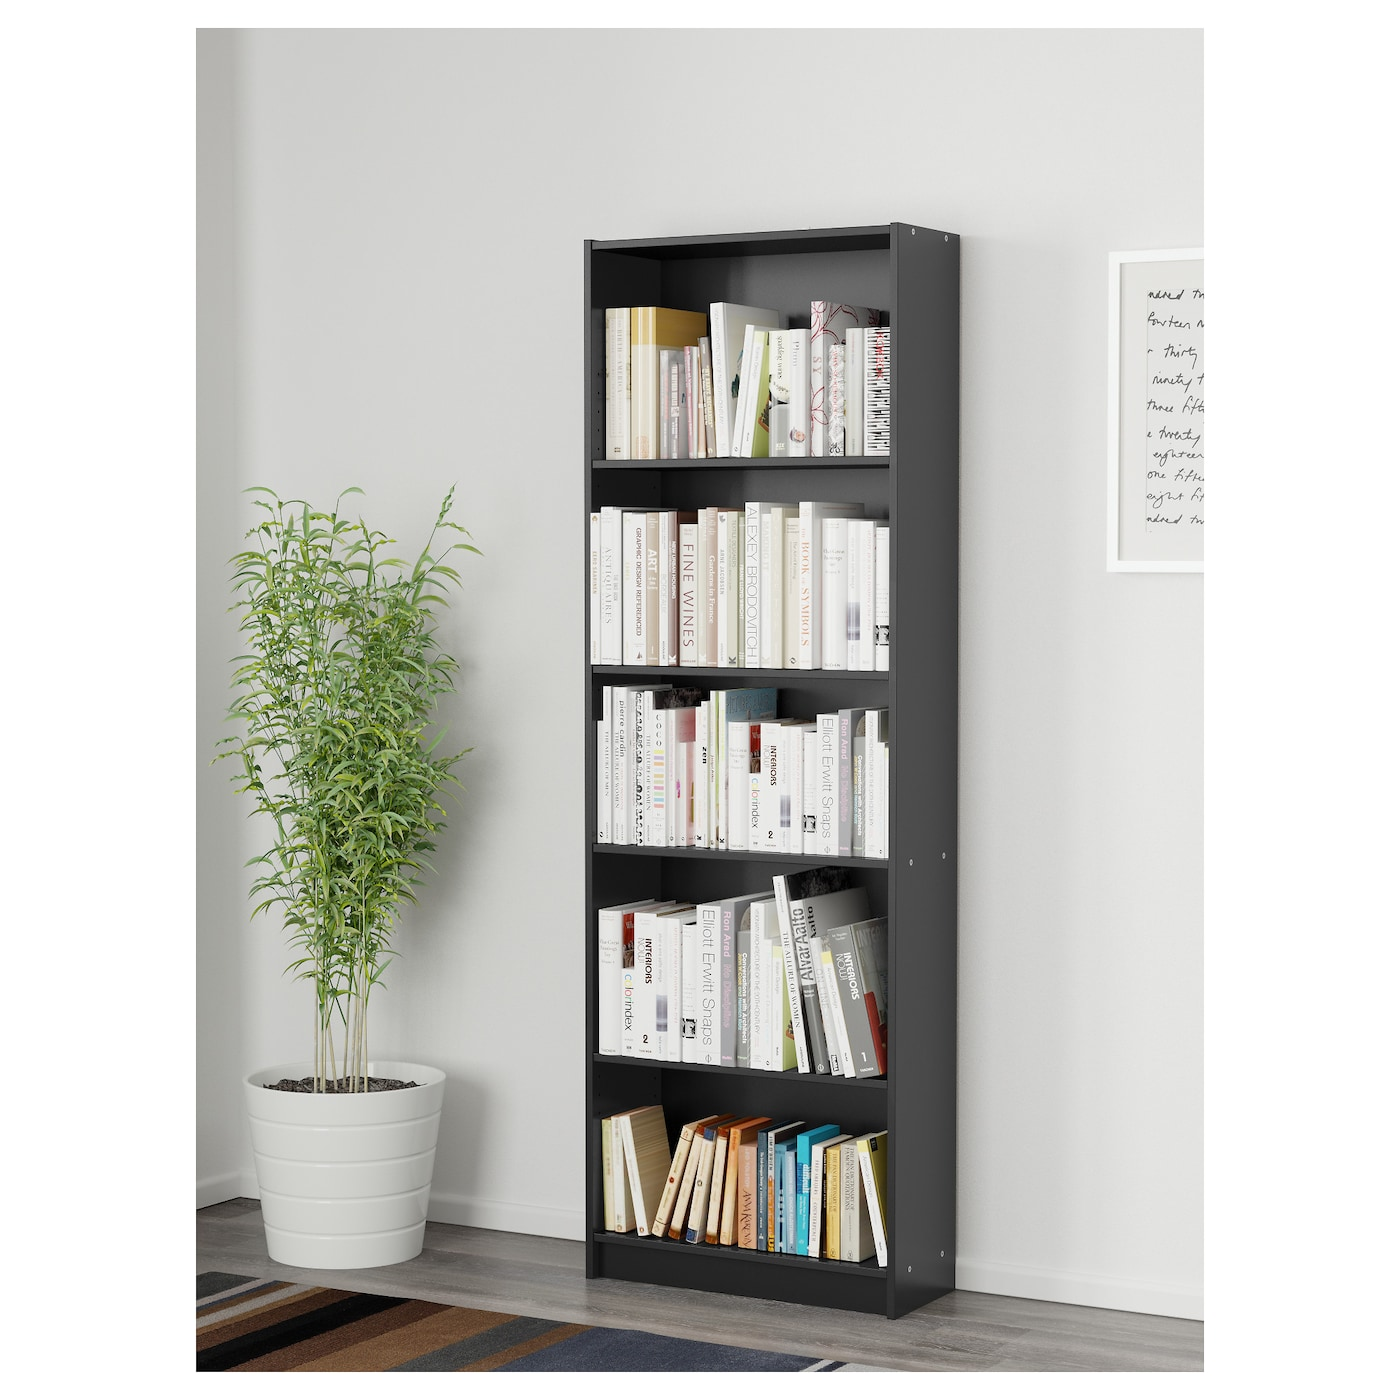 o ikea system review ikeabillybookcase billy of bookcase